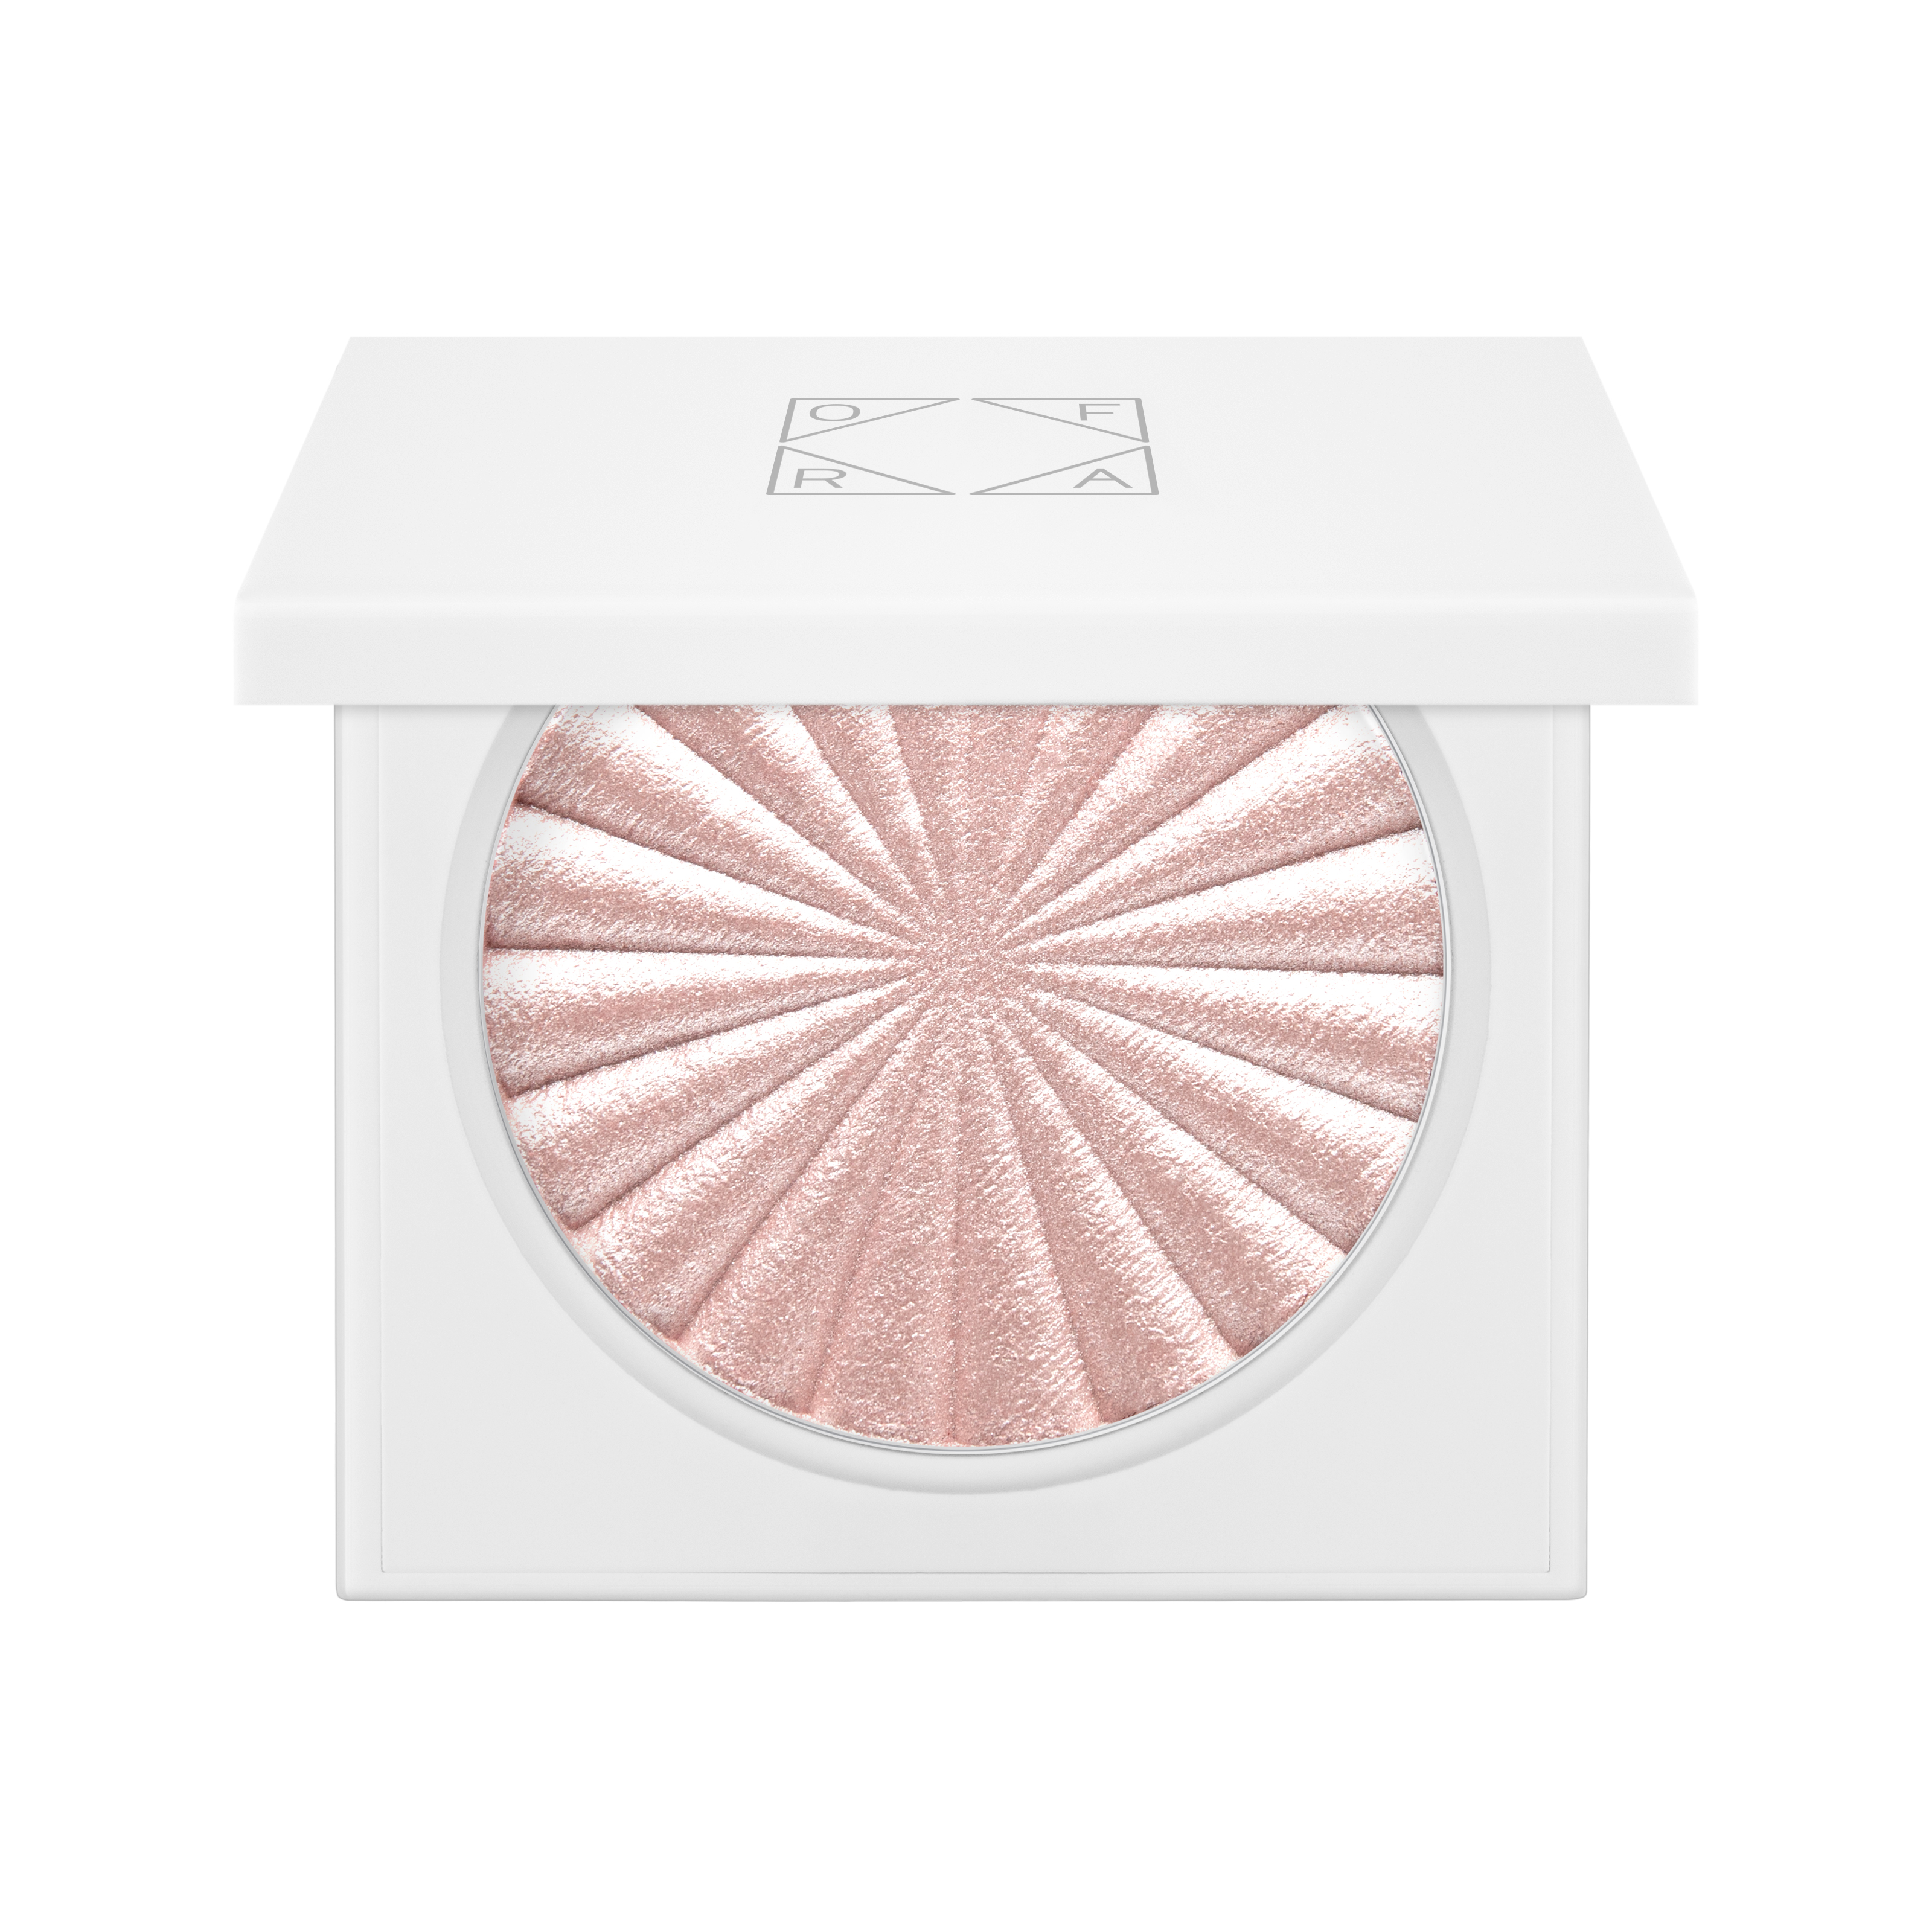 ofra-highlighter-pillowtalk-glow-south-africa